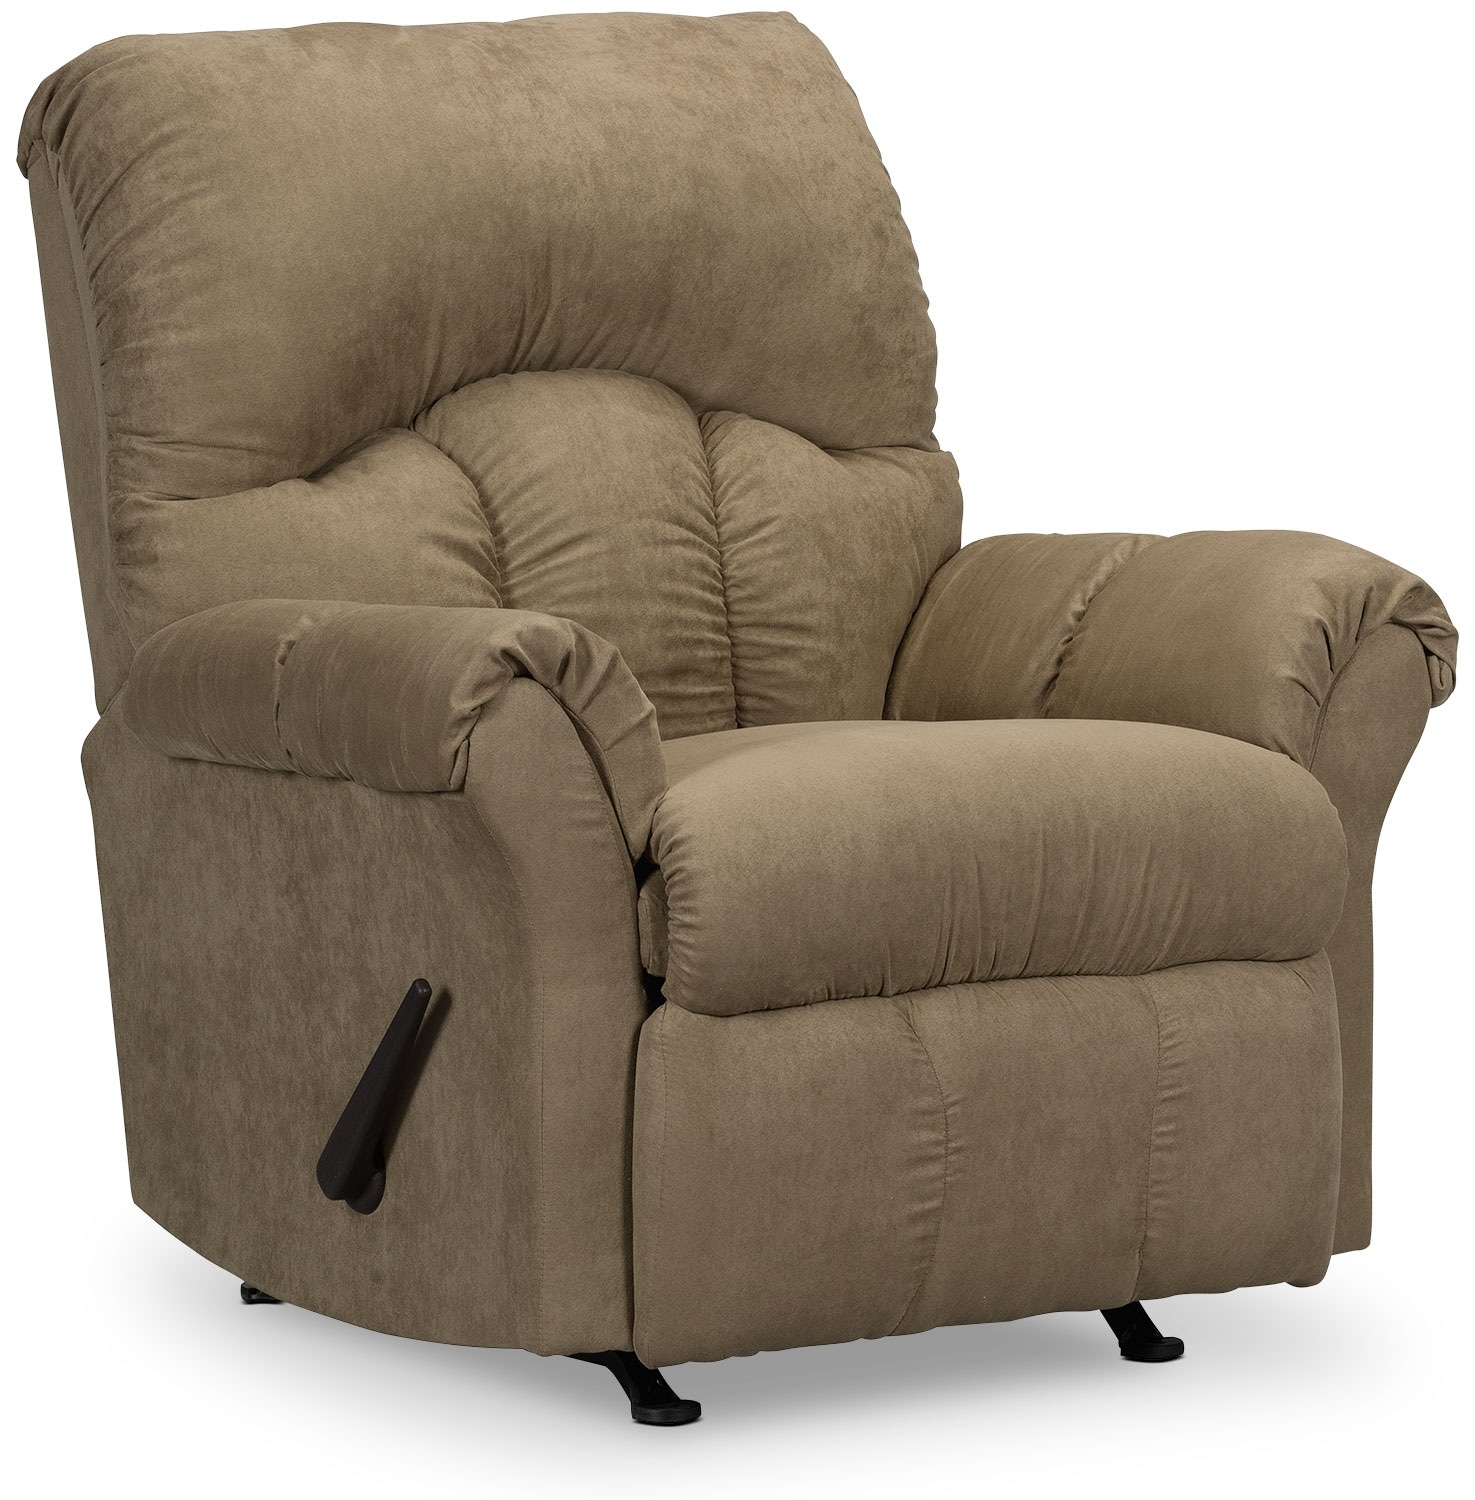 Living Room Furniture - Designed2B Recliner 6734 Microsuede Rocking Chair - Mocha